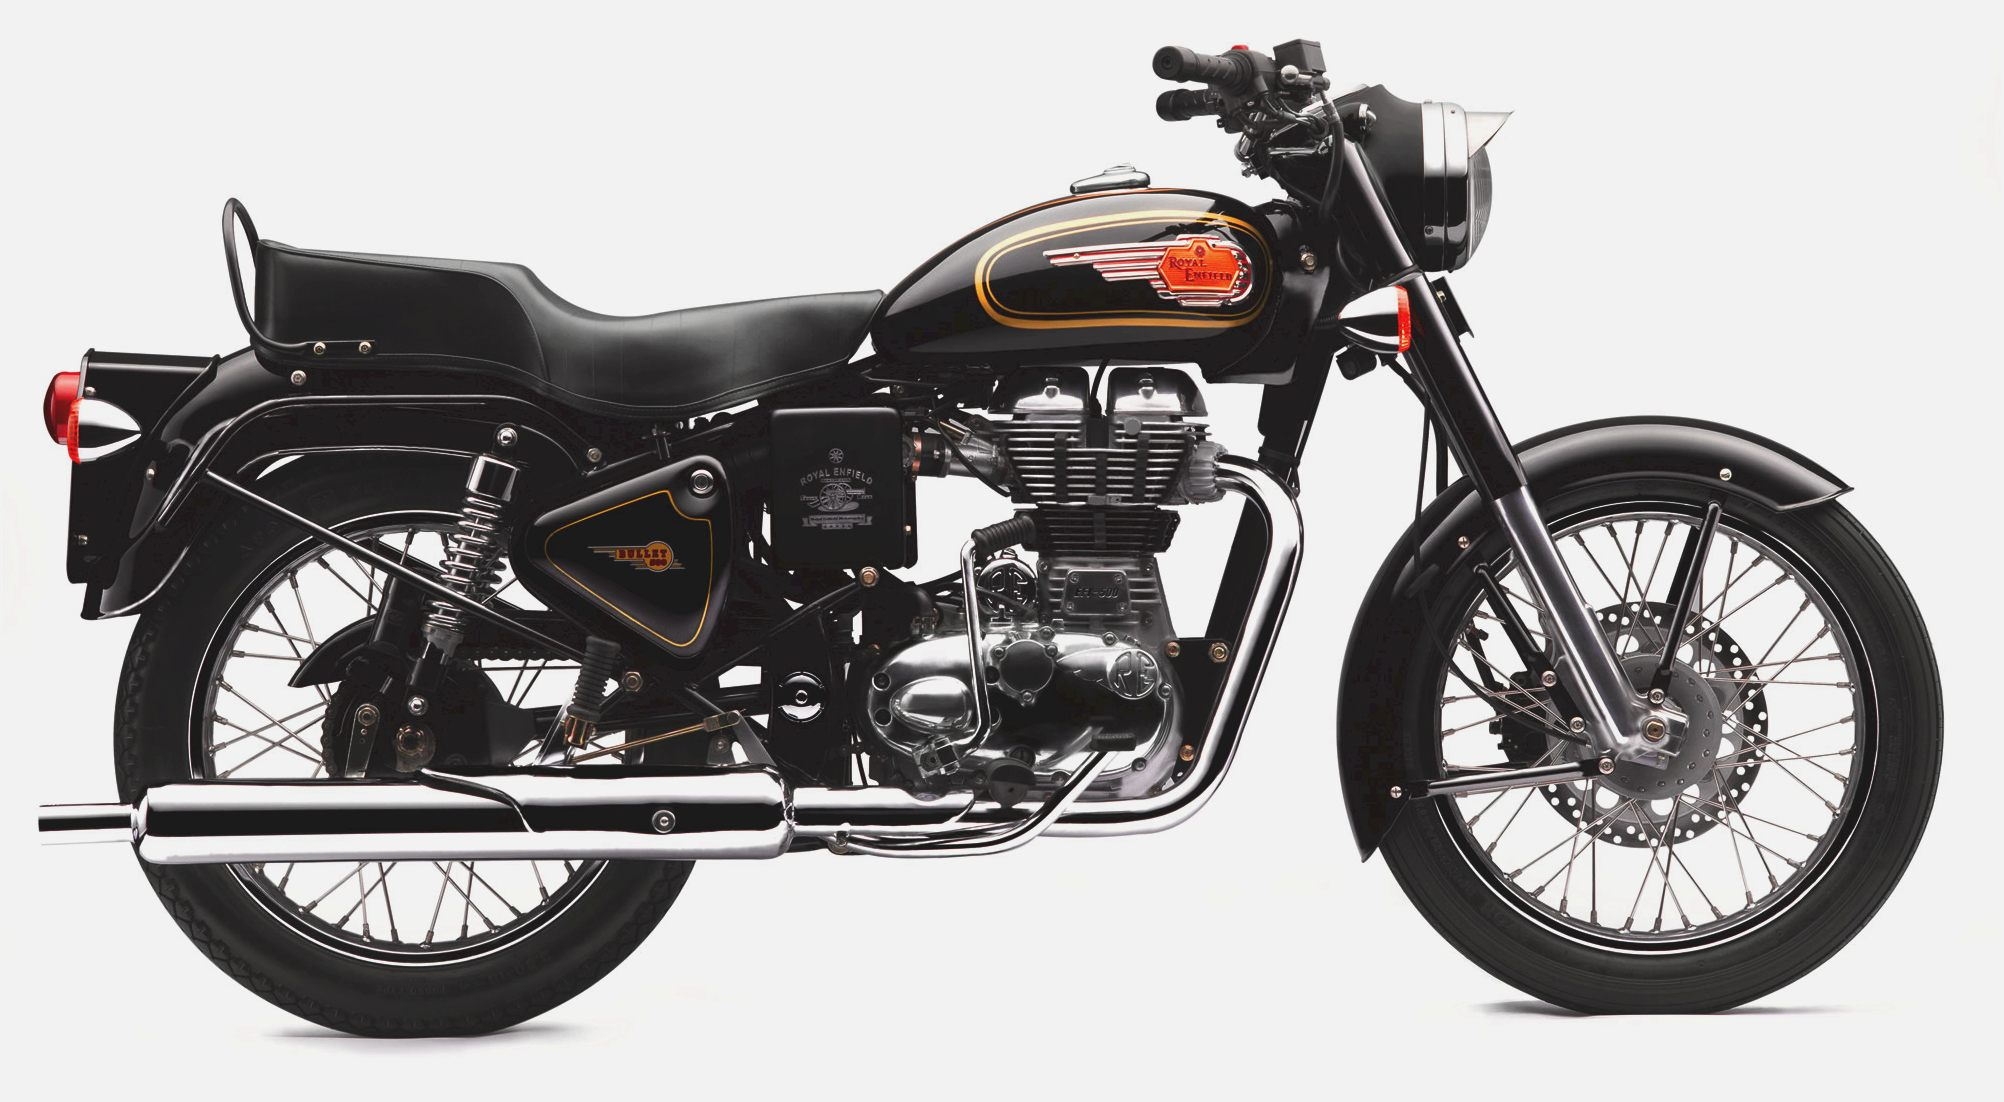 ... Royal Enfield Bullet 500 Trial Trail 2009 images #127408 ...